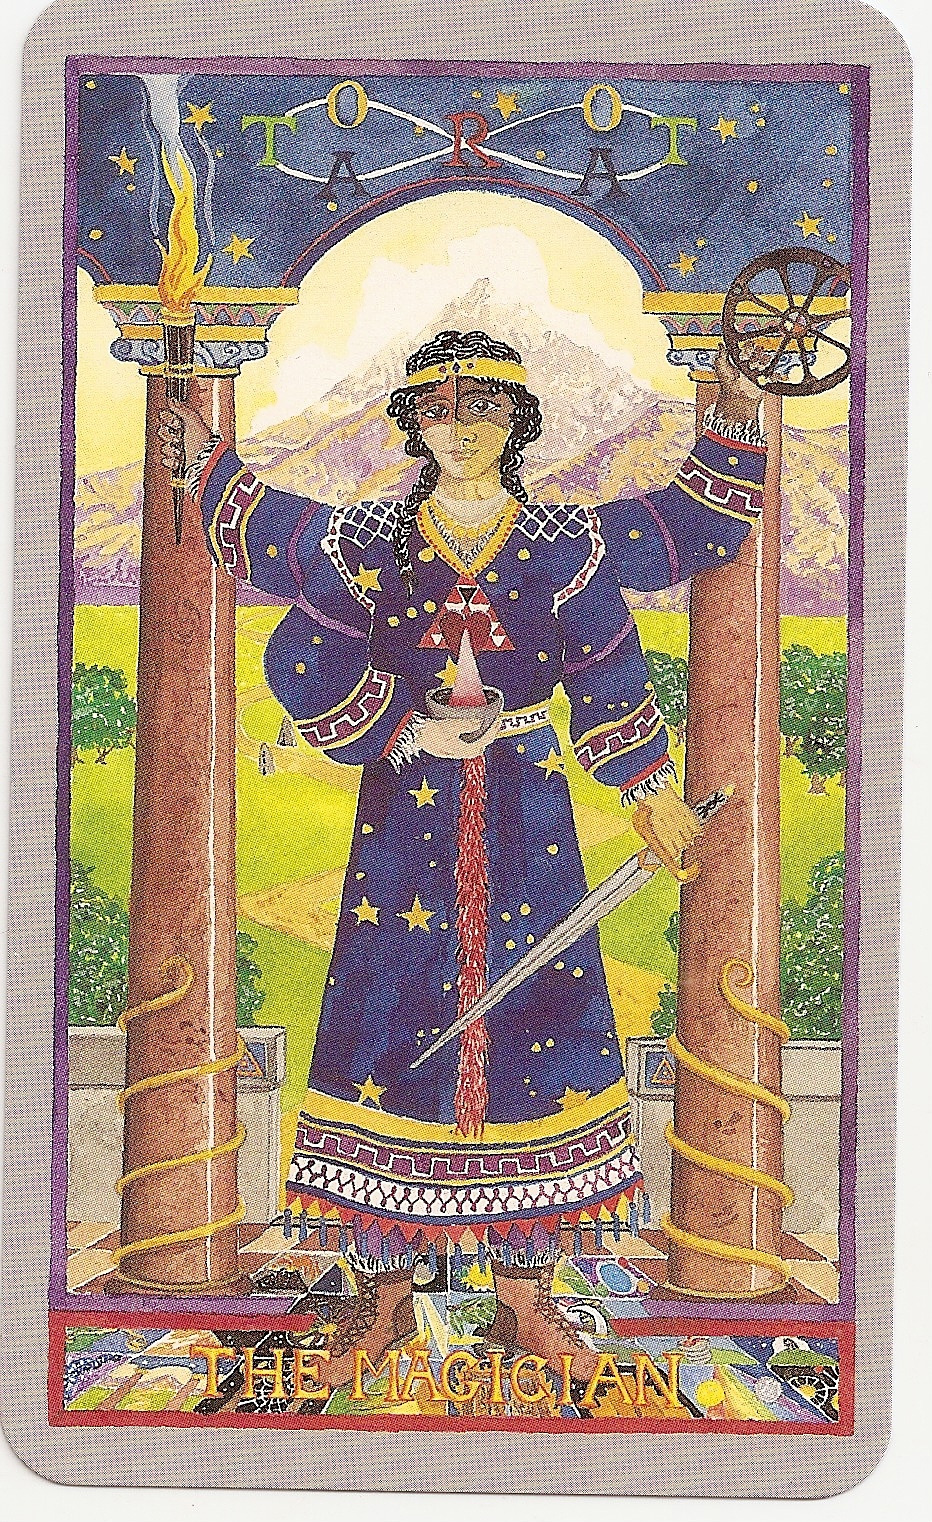 Tarot And More 3 Tarot Symbolism: Tarot And More: 4) Tarot Symbolism: The Caduceus: